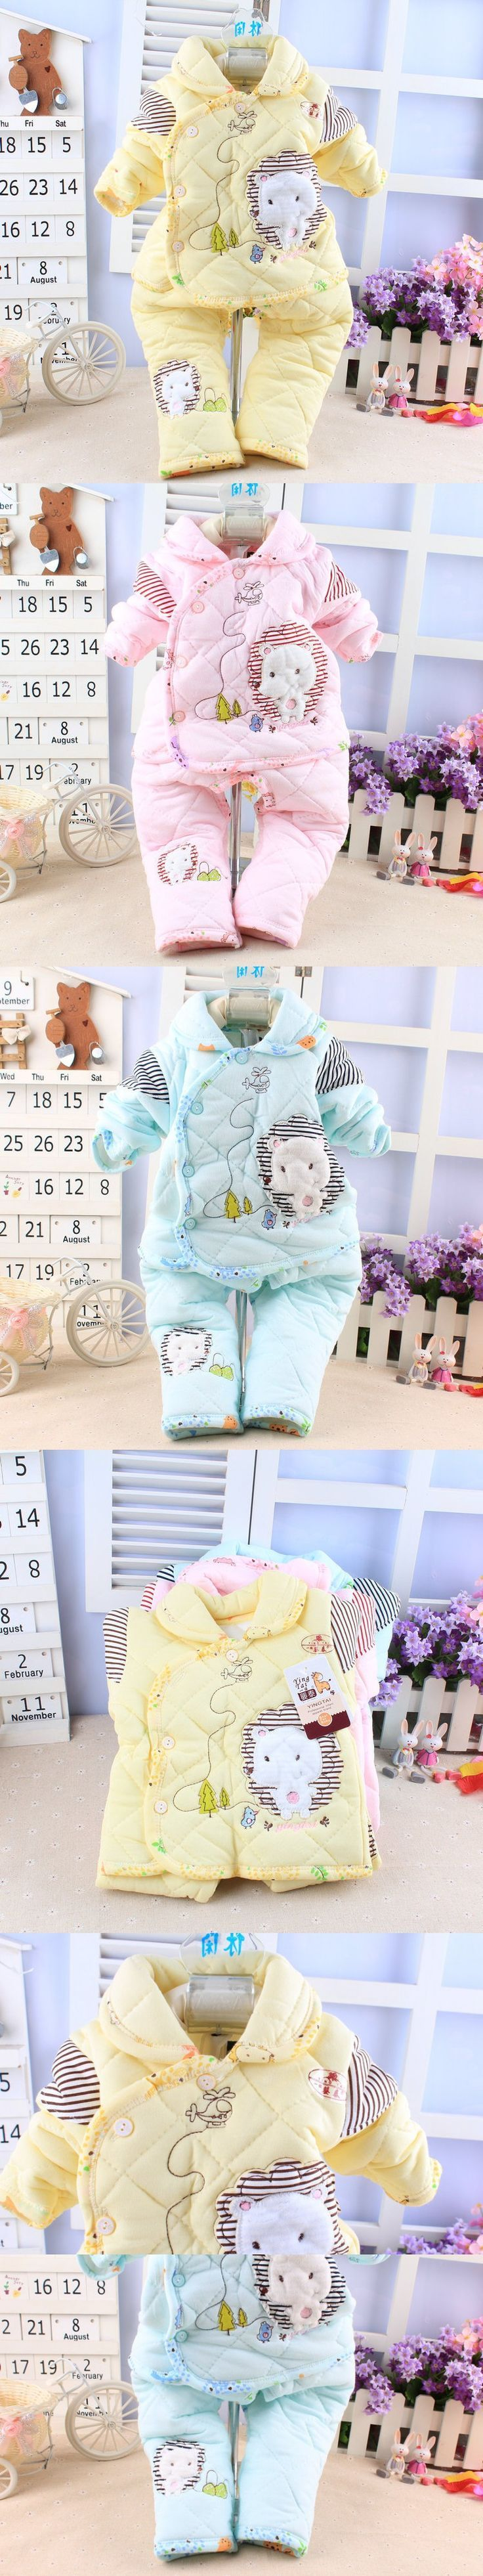 Nice Clothes For Kids Cartoon Fashion Infant Baby Clothing Set Turn-down Collar Single Breasted Newbor... Check more at http://24shopping.tk/fashion-clothes/clothes-for-kids-cartoon-fashion-infant-baby-clothing-set-turn-down-collar-single-breasted-newbor/